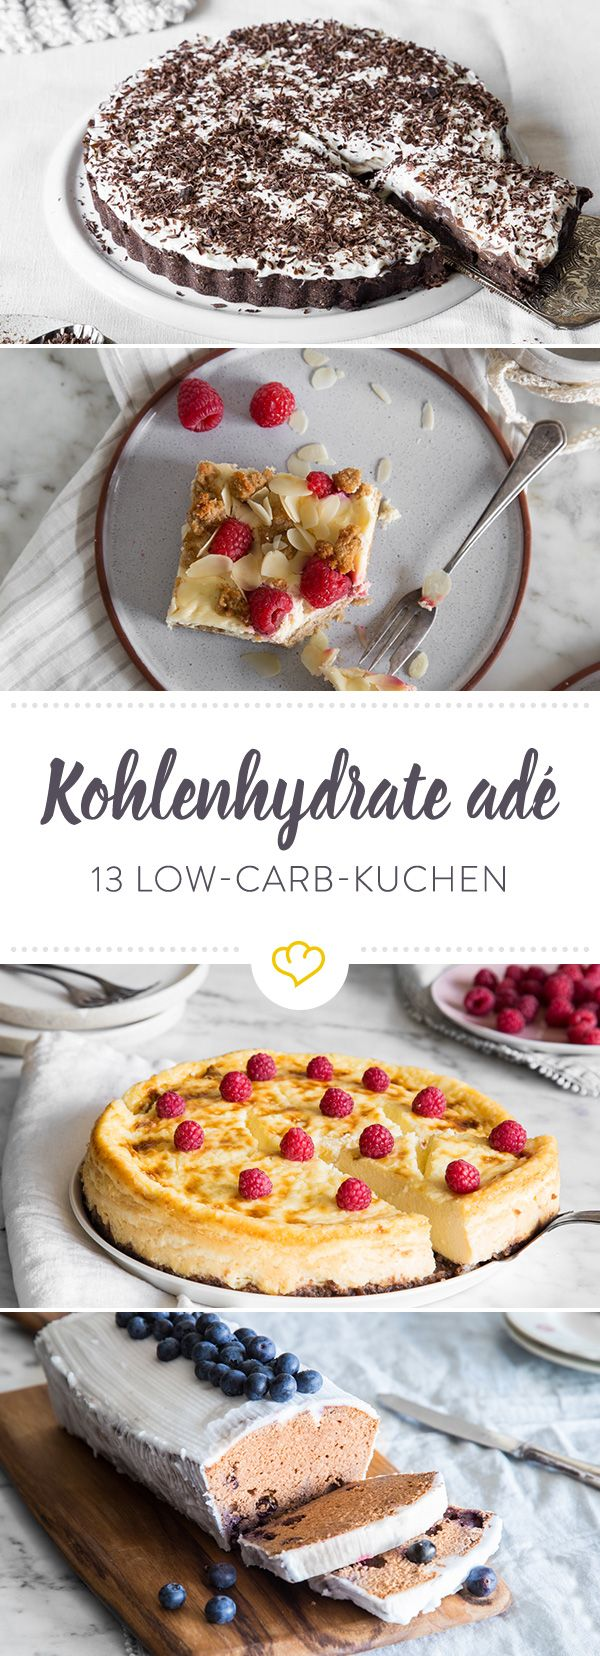 kohlenhydrate ad 13 ideen f r low carb kuchen european desserts pinterest dietas. Black Bedroom Furniture Sets. Home Design Ideas